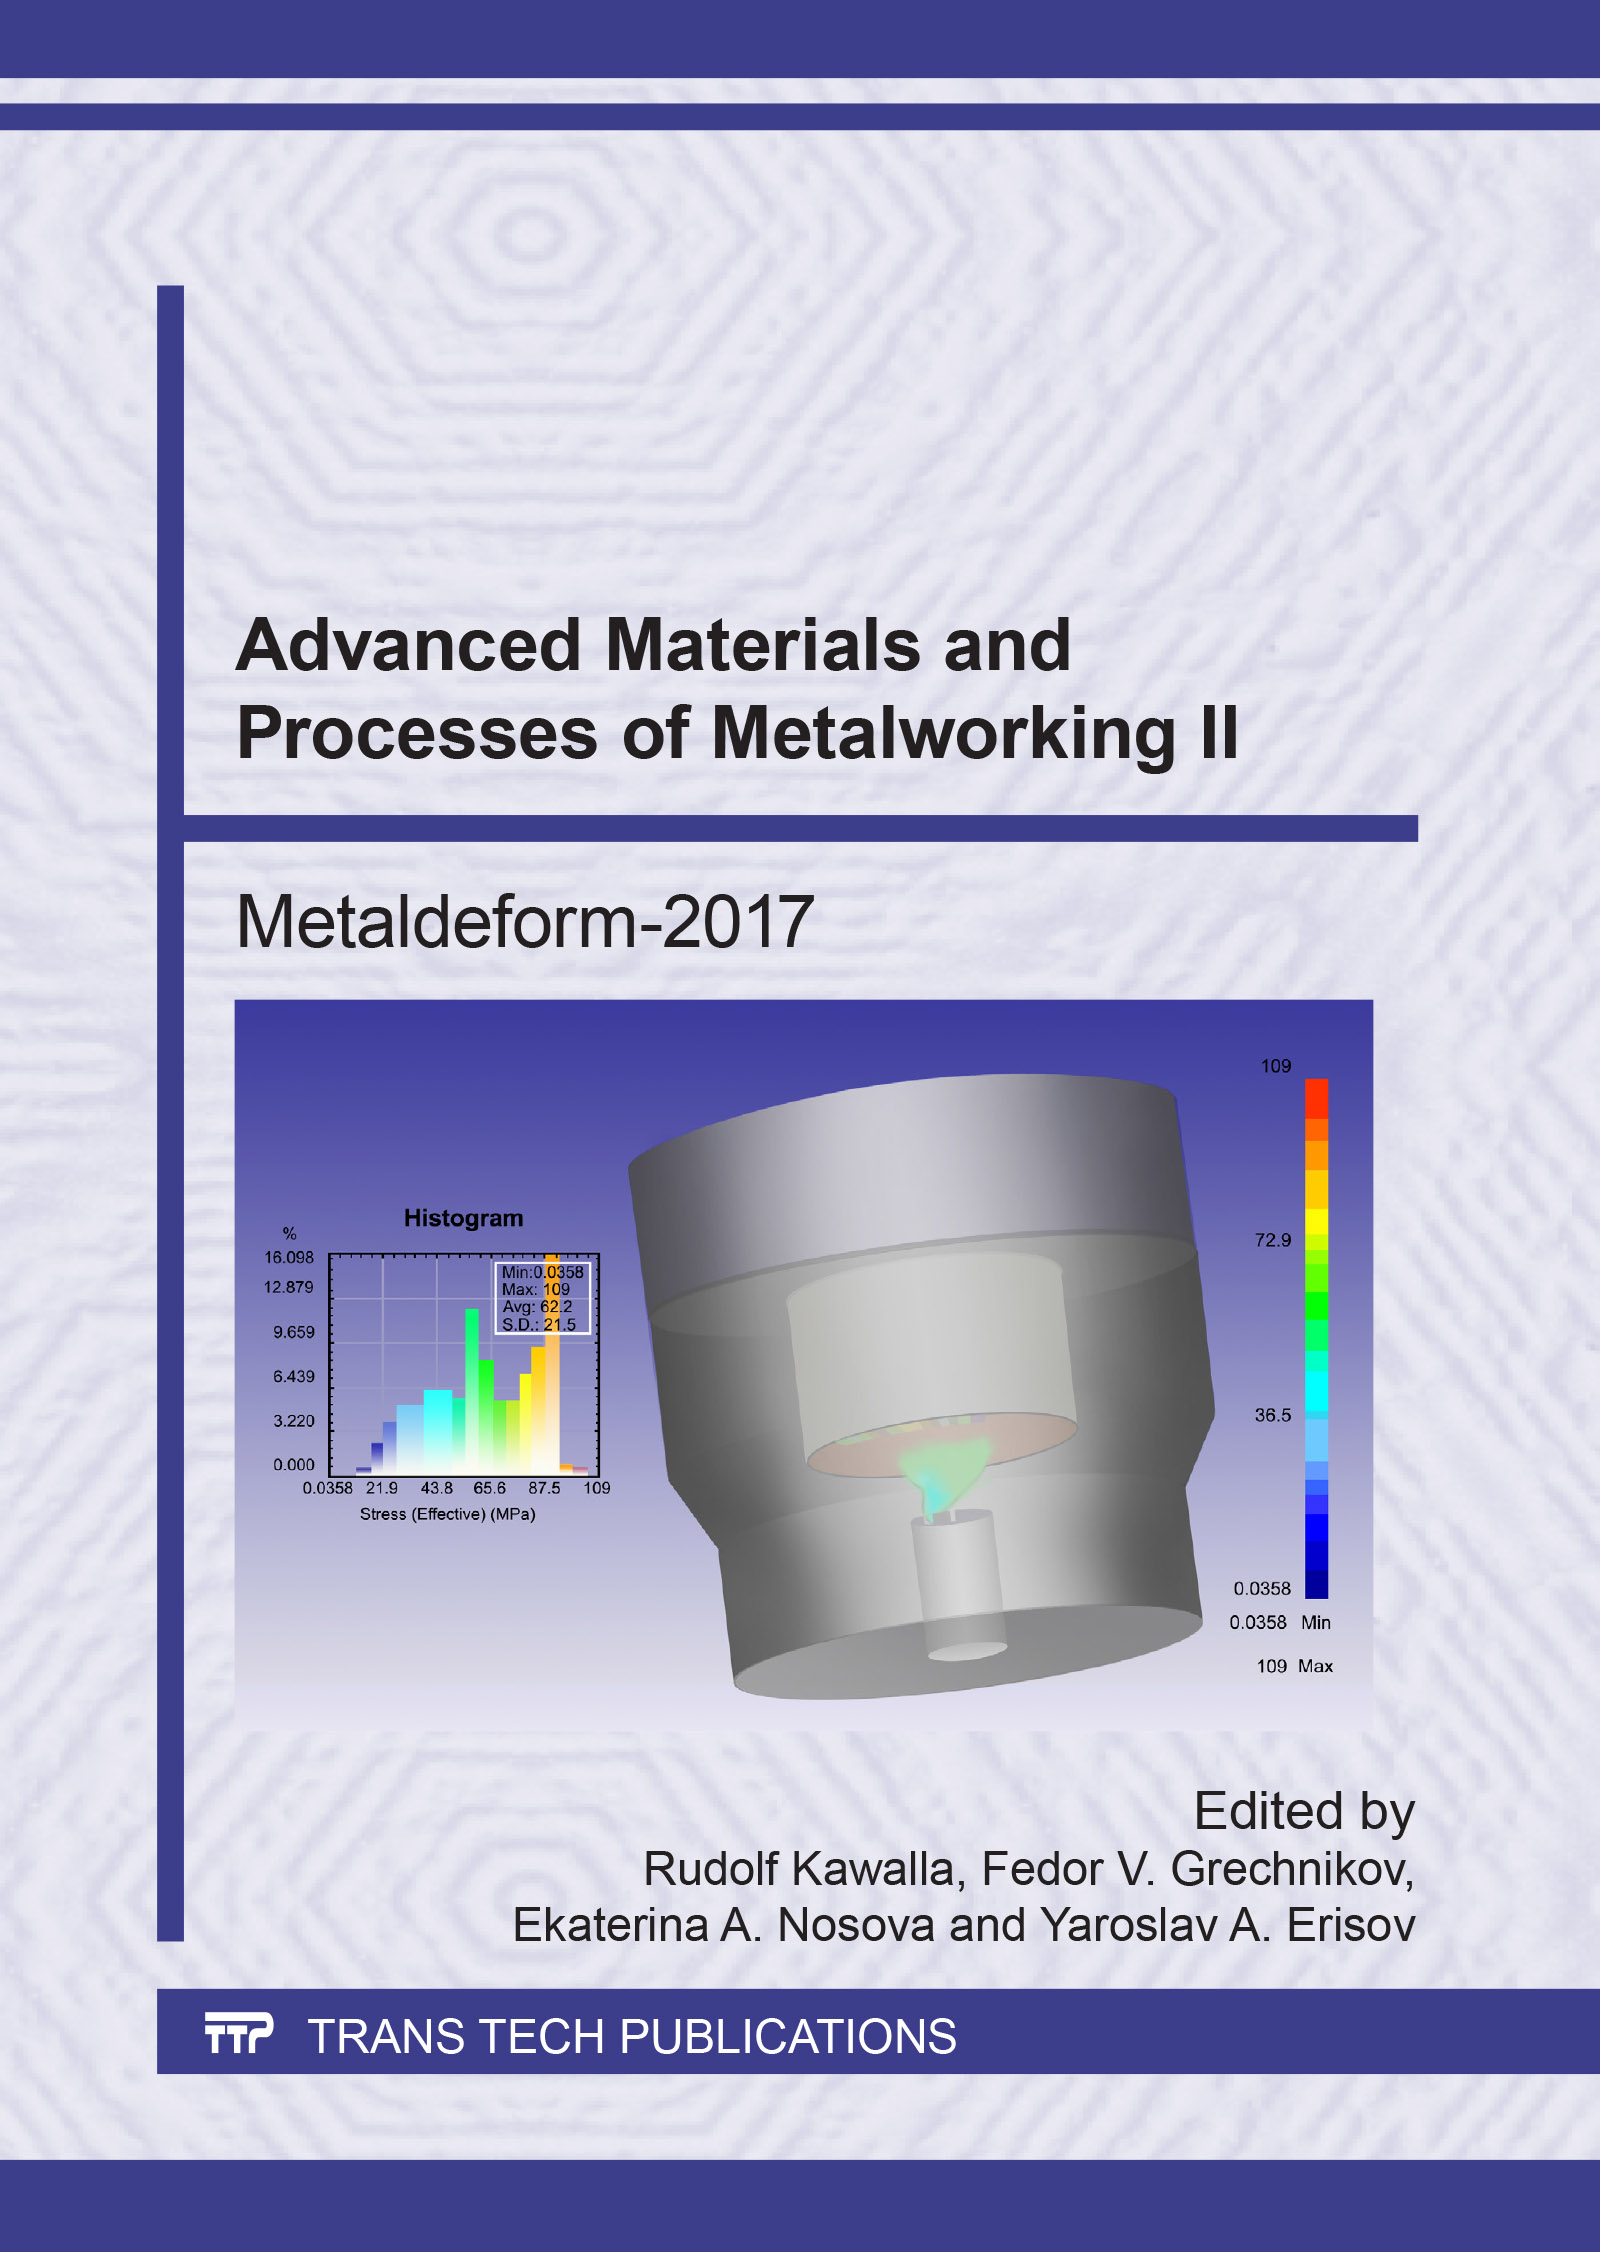 Advanced Materials and Processes of Metalworking II